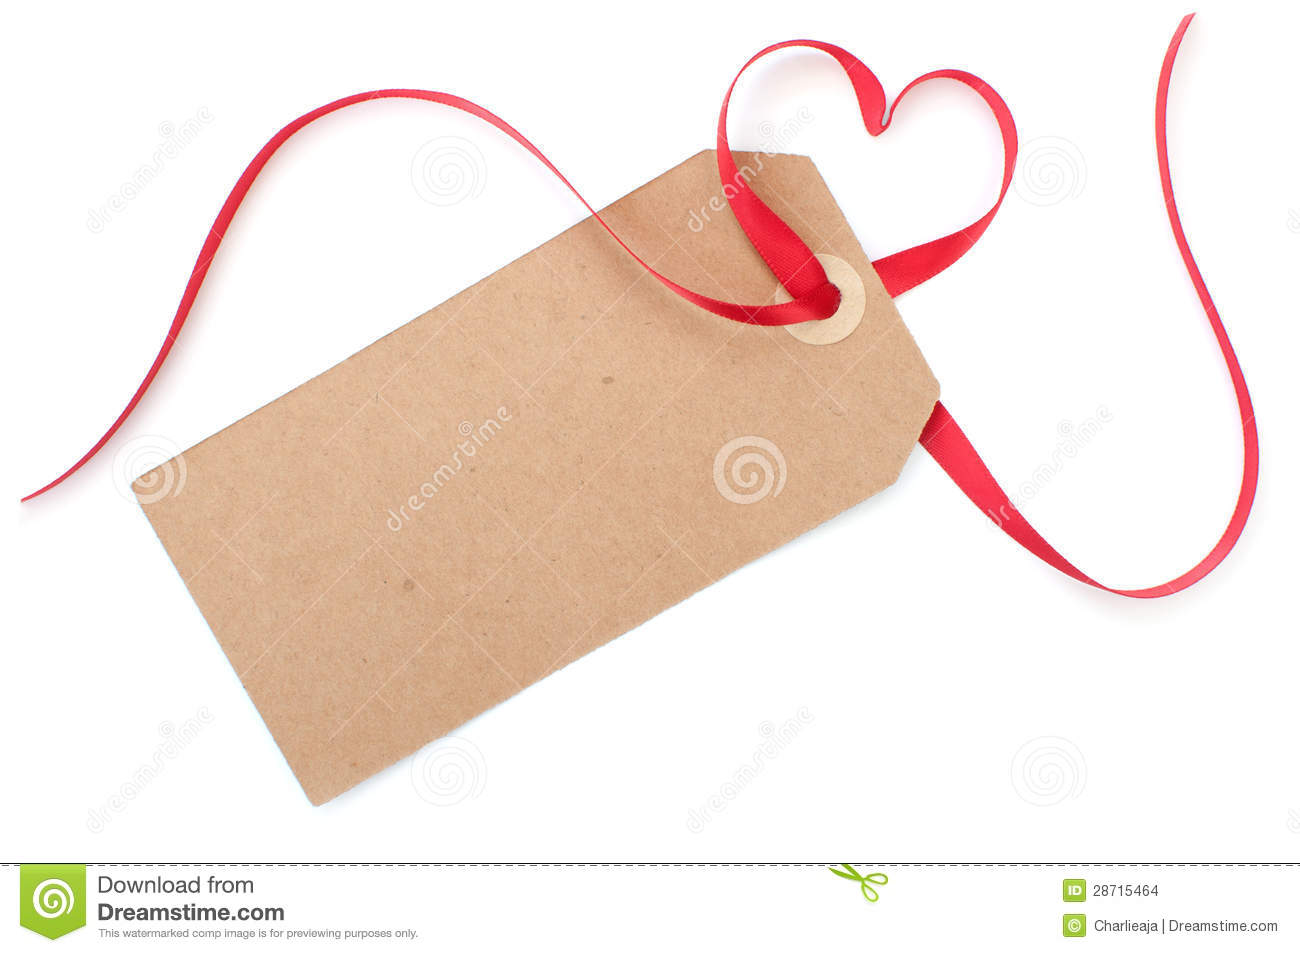 Tag: Gift Tag With Heart Bow Stock Images